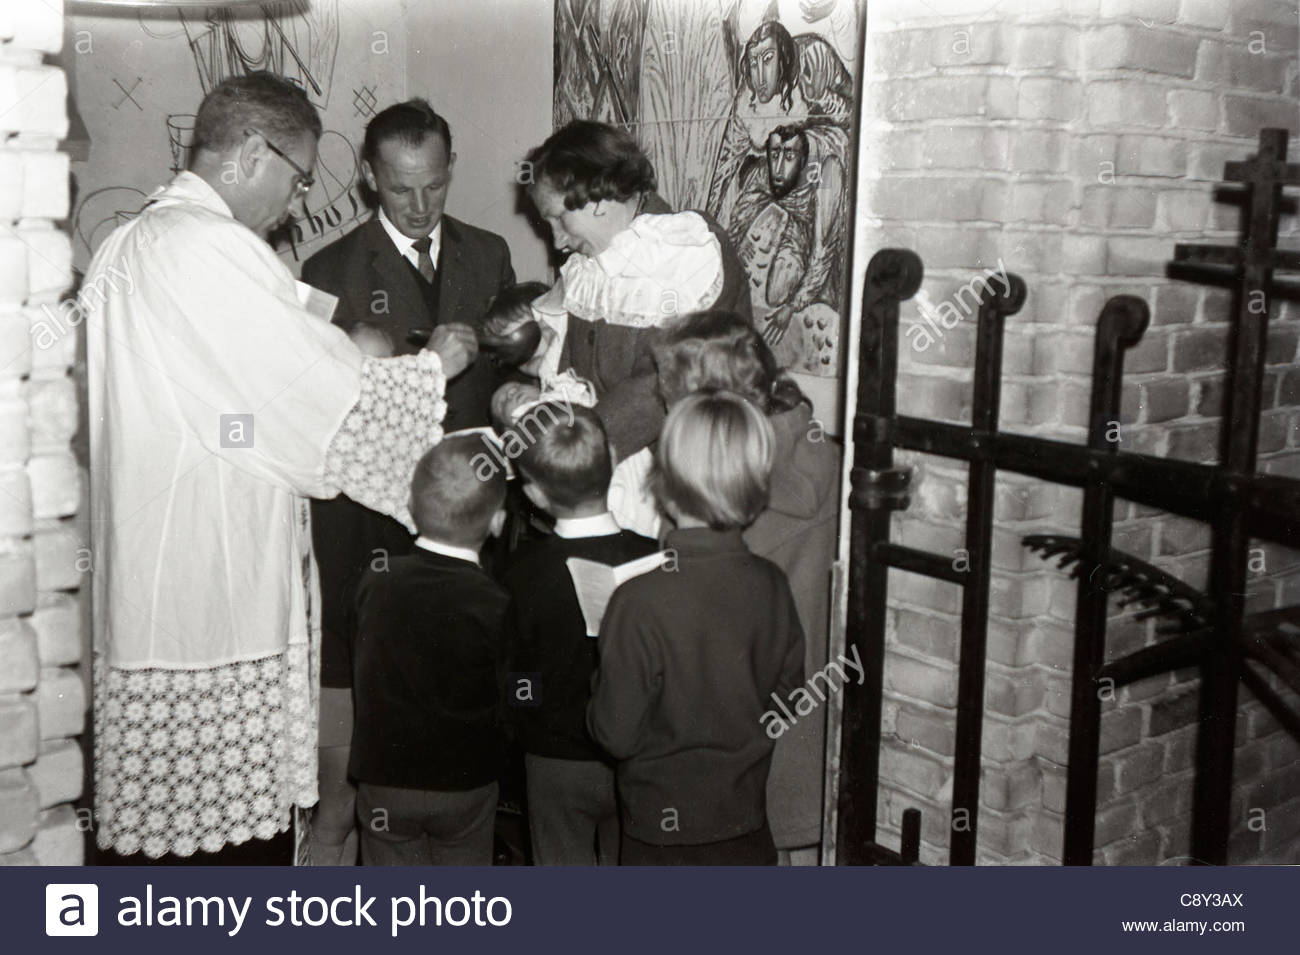 baptising of a baby with family 1960s Holland - Stock Image